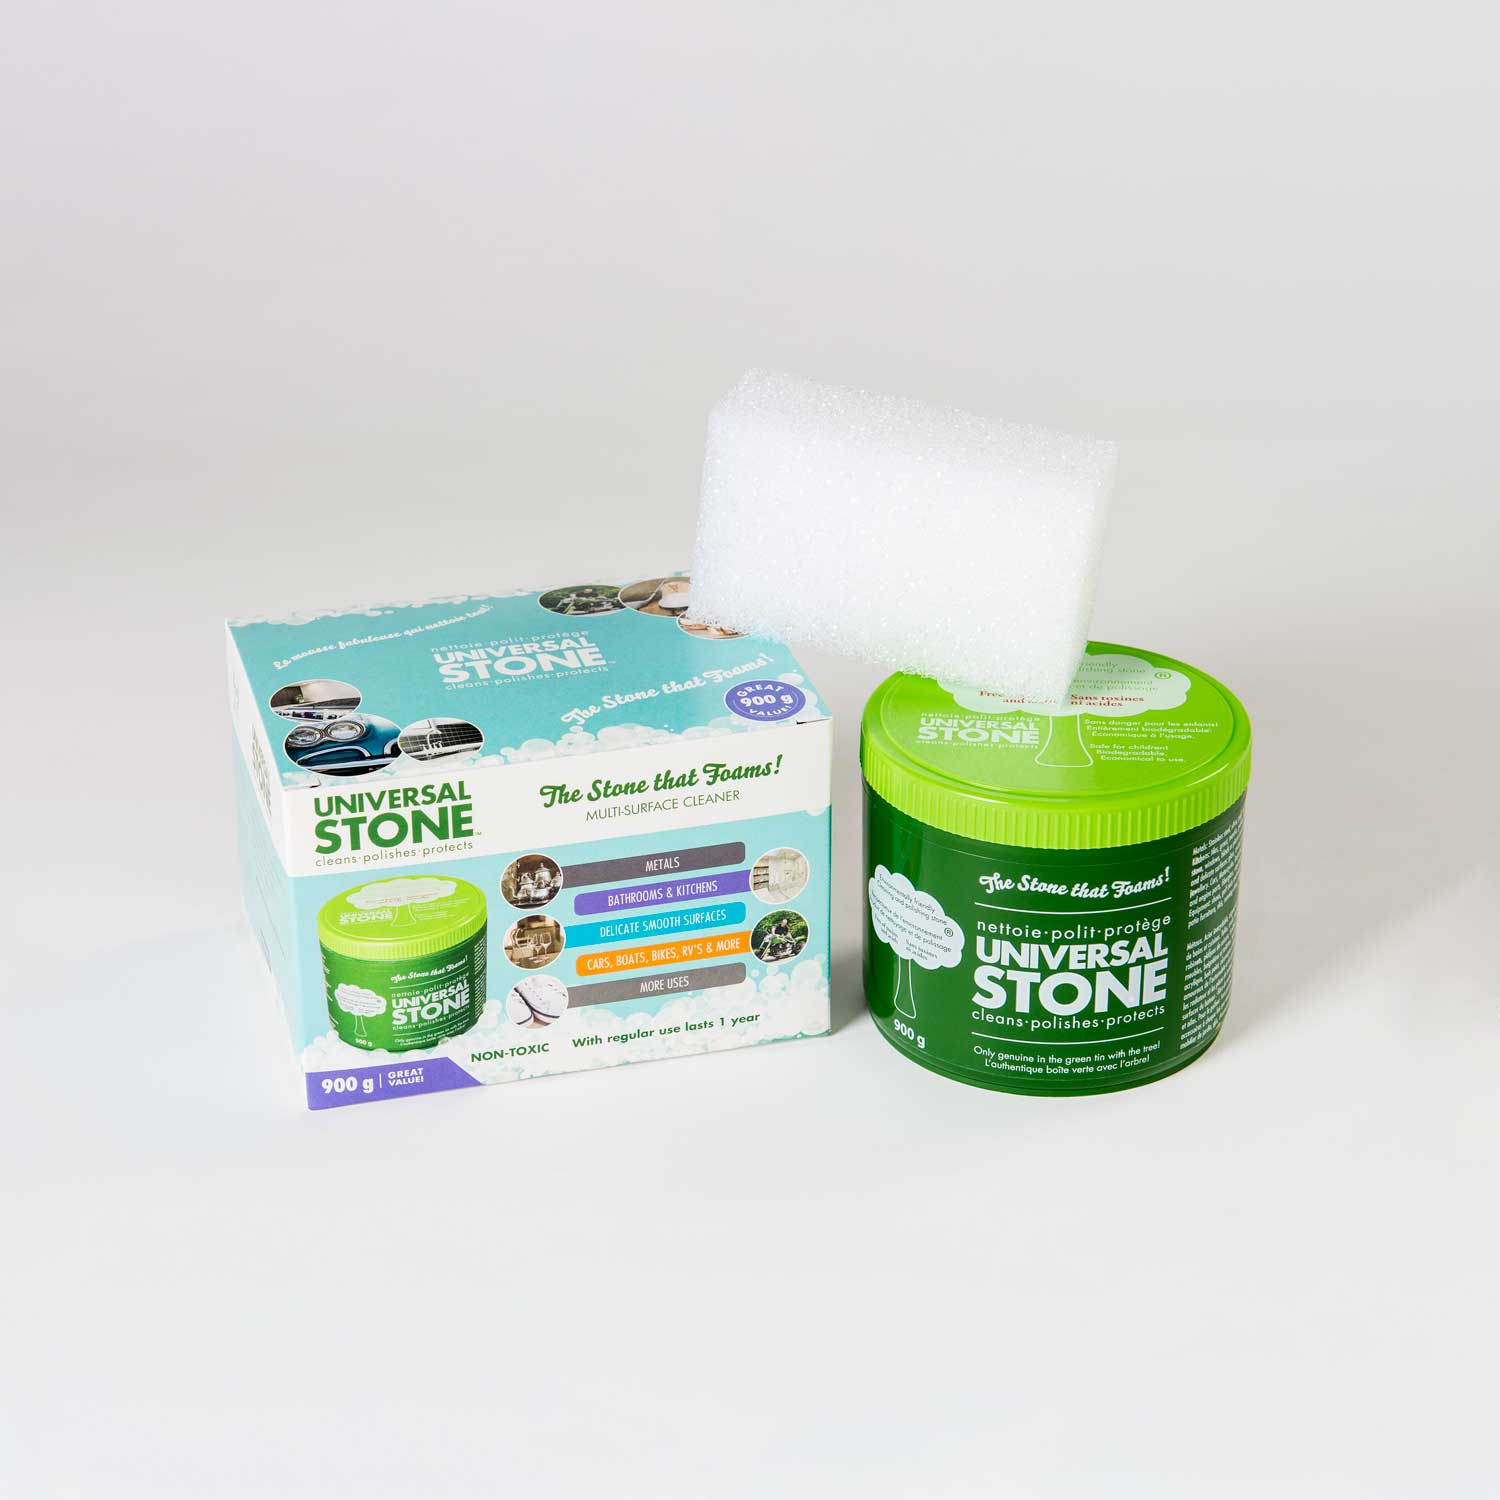 Universal Stone Cleaning 900gall in one cleanser